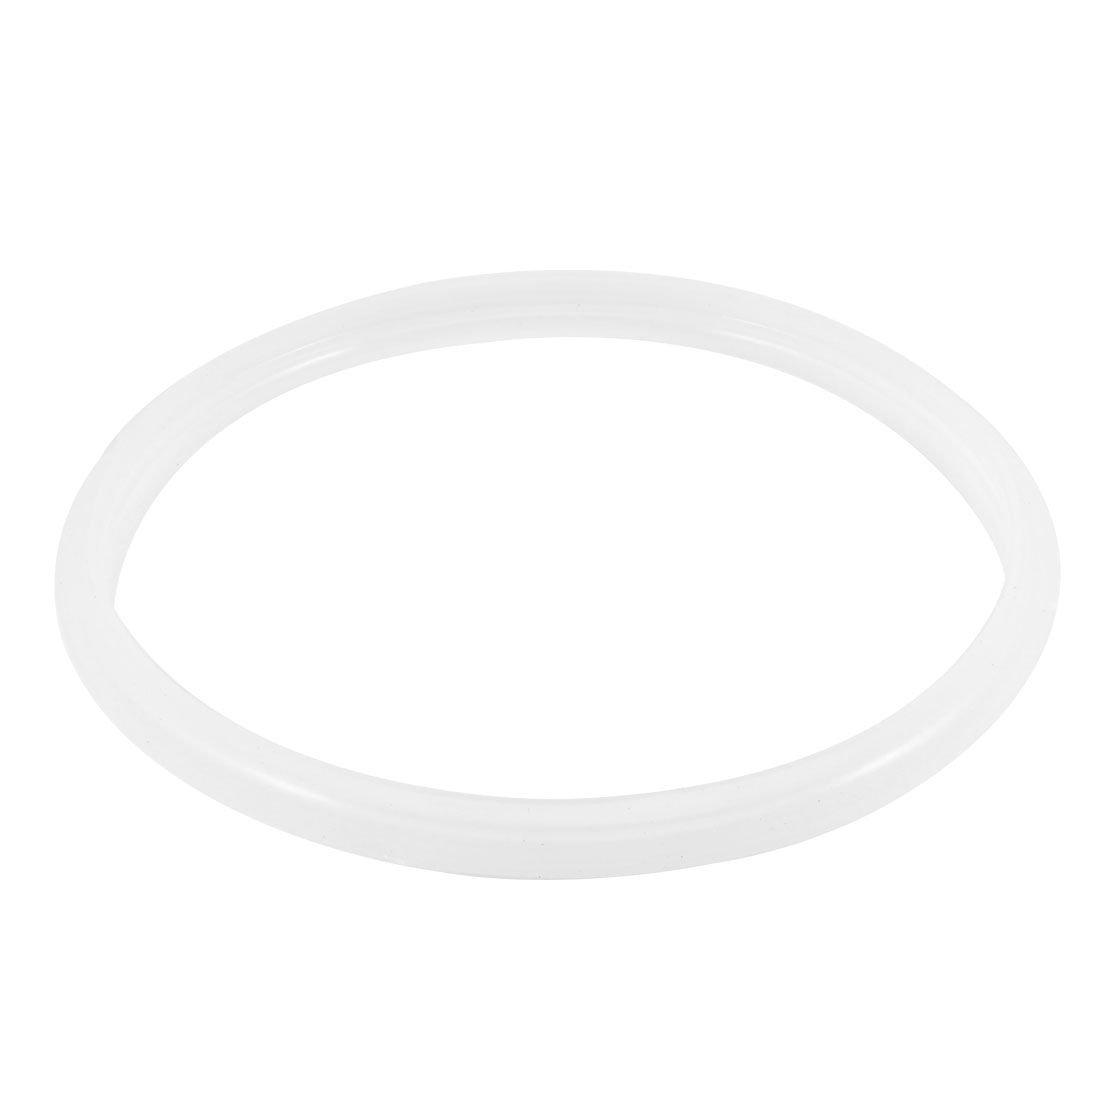 "Replacement 8.5"" Inside Dia Silicone Sealing Ring for Pressure Cooker"